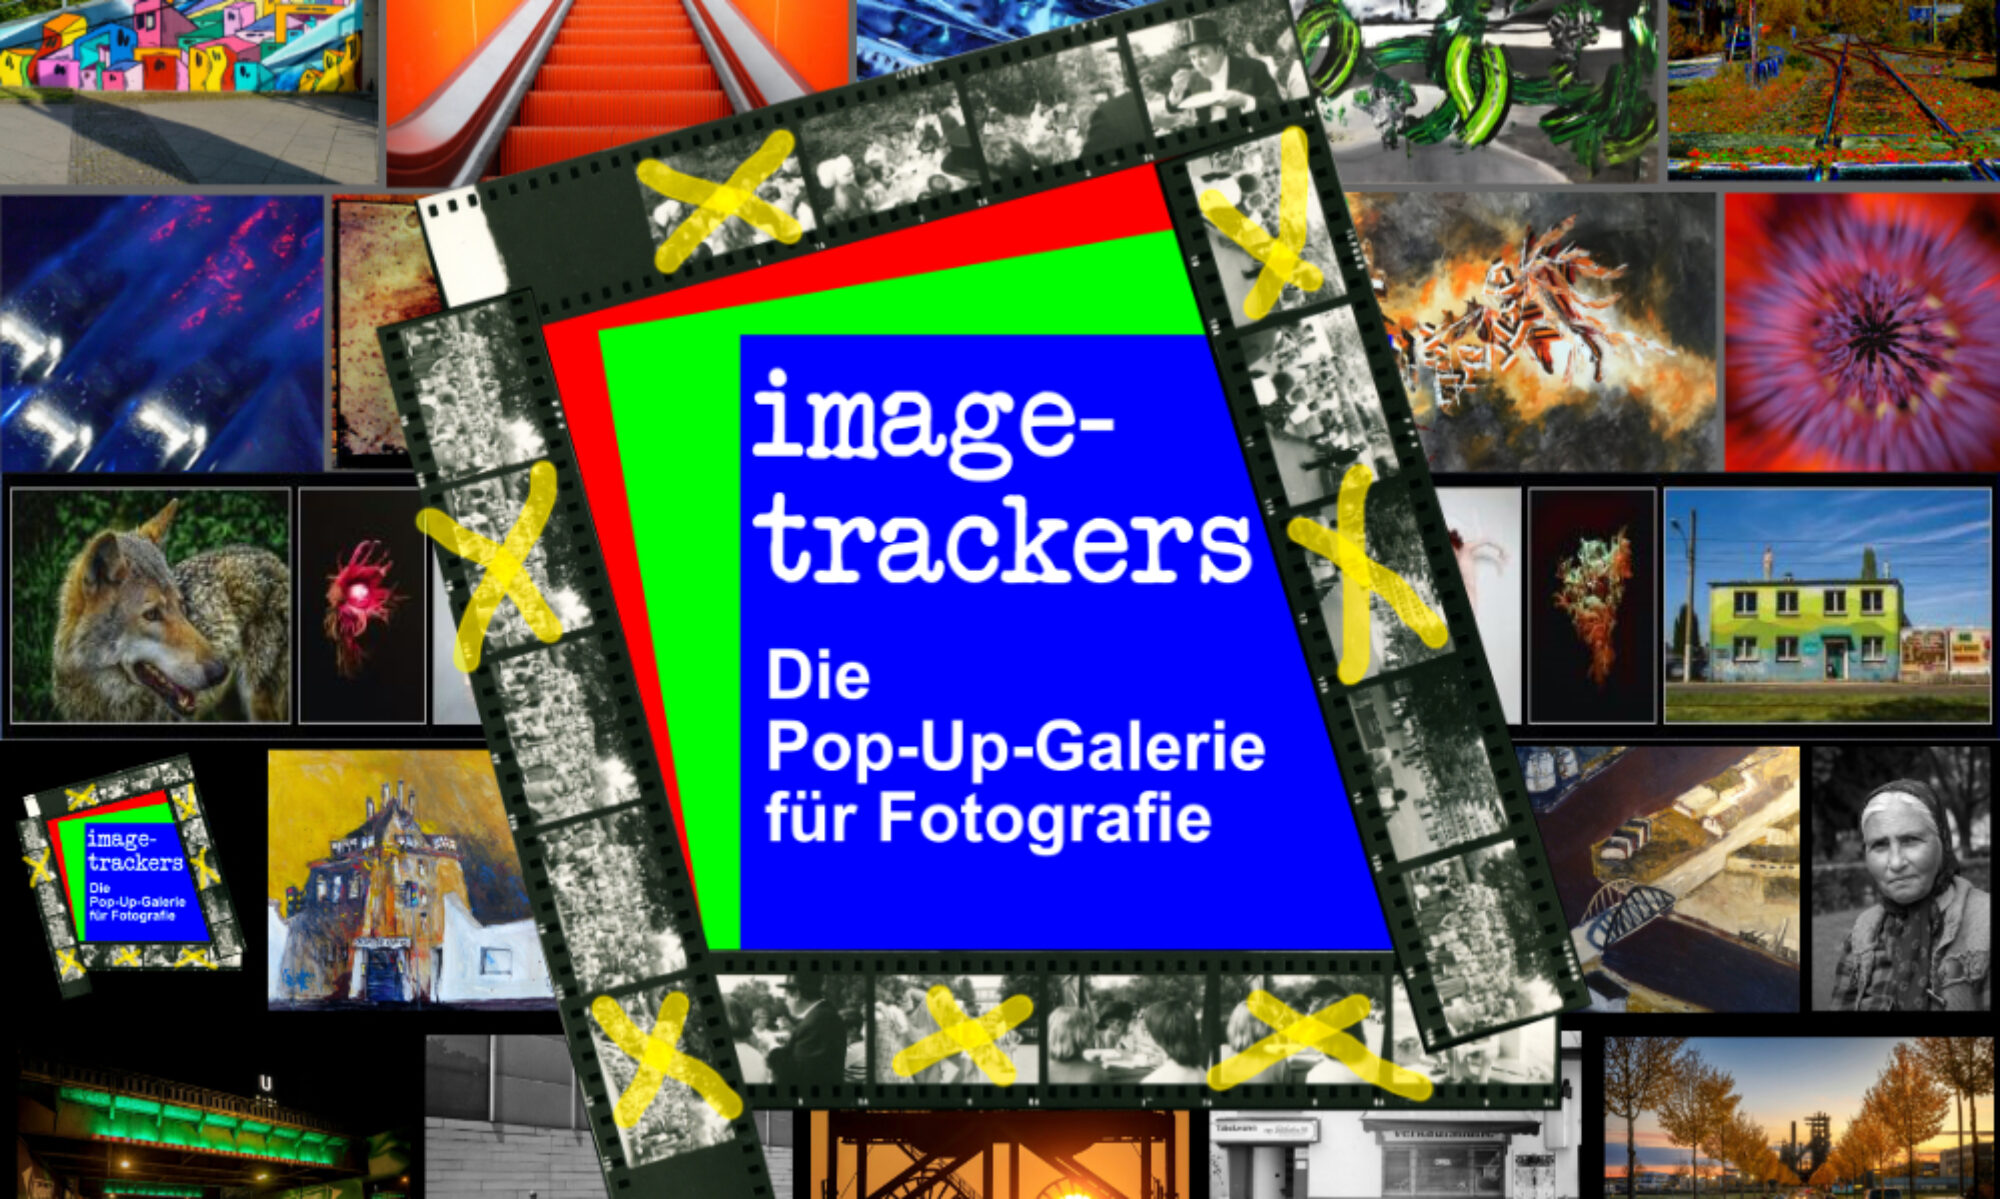 image-trackers